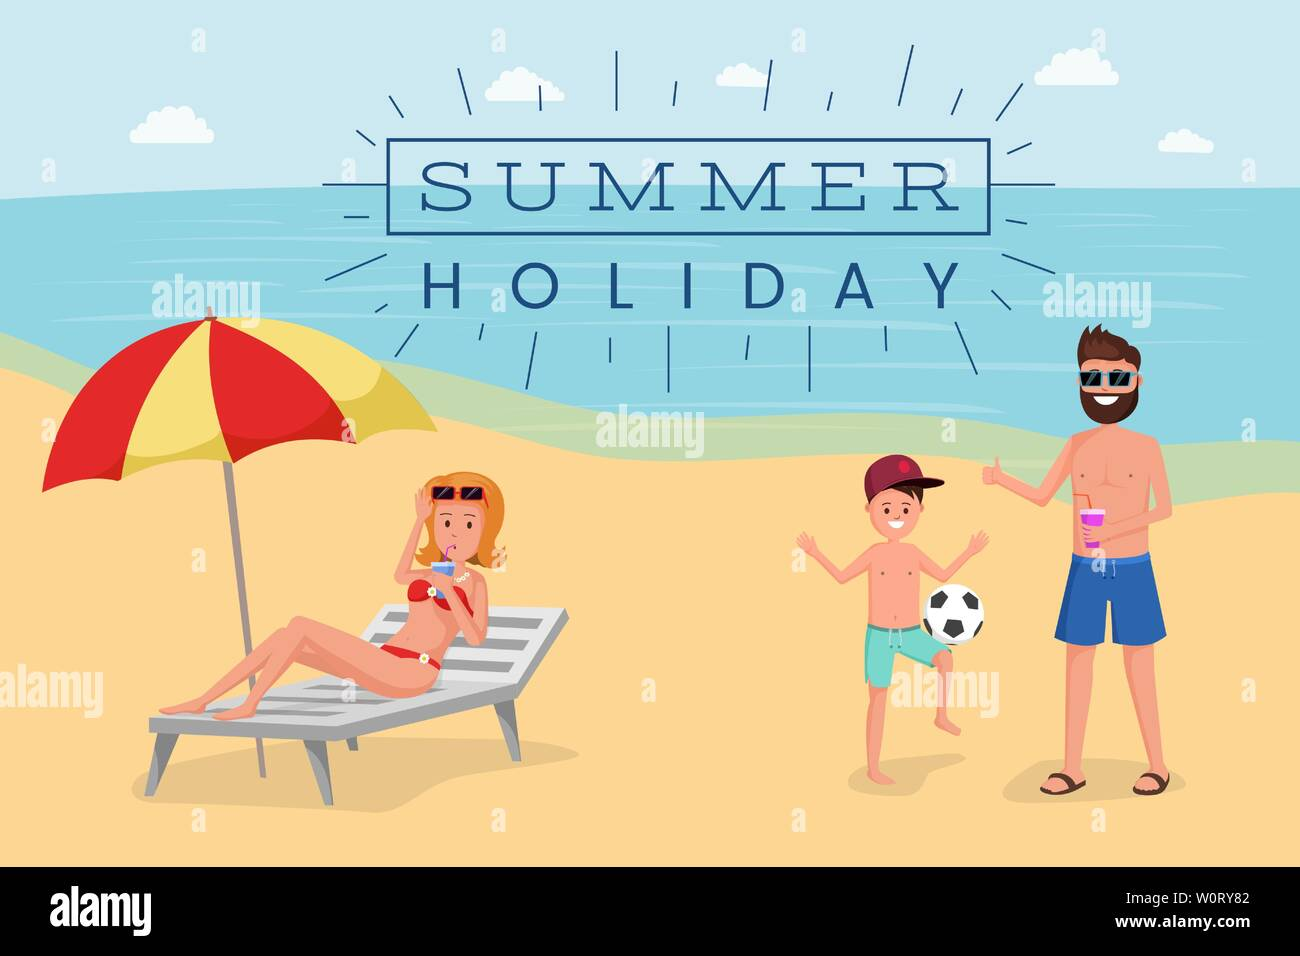 Summer holiday flat vector banner template. Cartoon tourist sunbathing on beach, playing ball game, woman on deck chair drinking cocktail. Seaside resort for family weekend advertising poster layout - Stock Vector